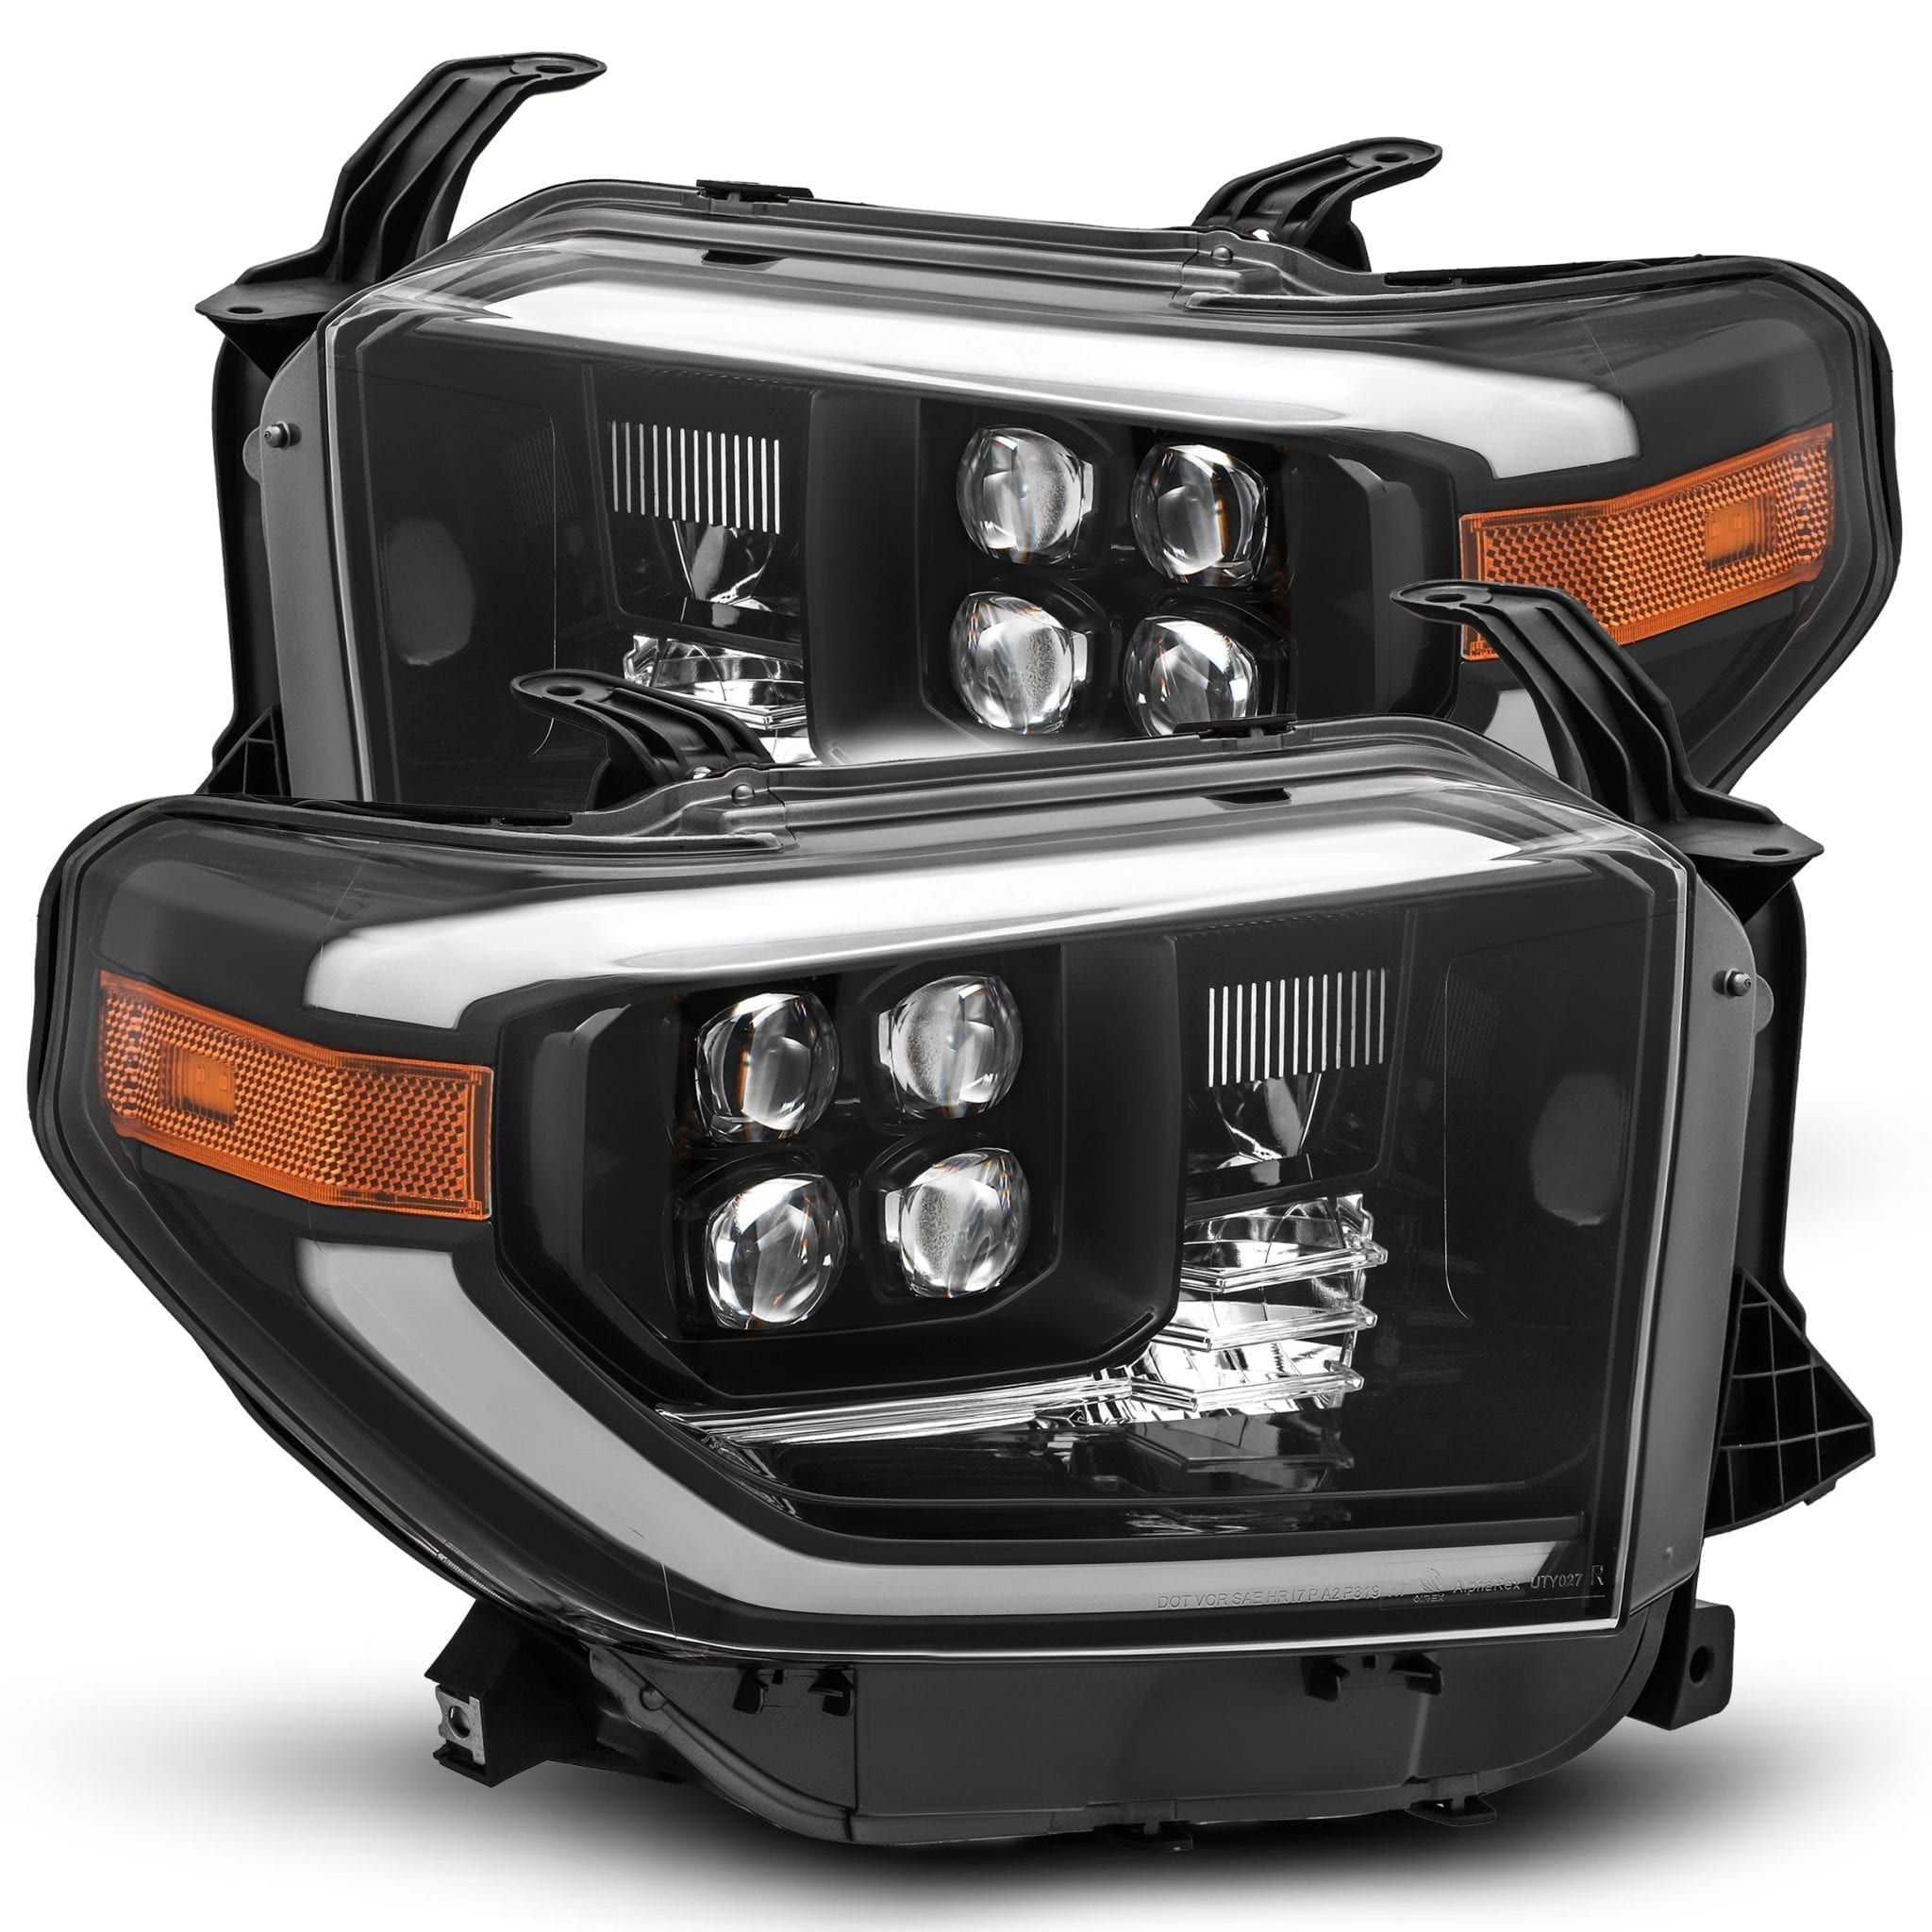 AlphaRex 14-20 Toyota Tundra NOVA-Series LED Projector Headlights Mid-Night Black - Ships Free